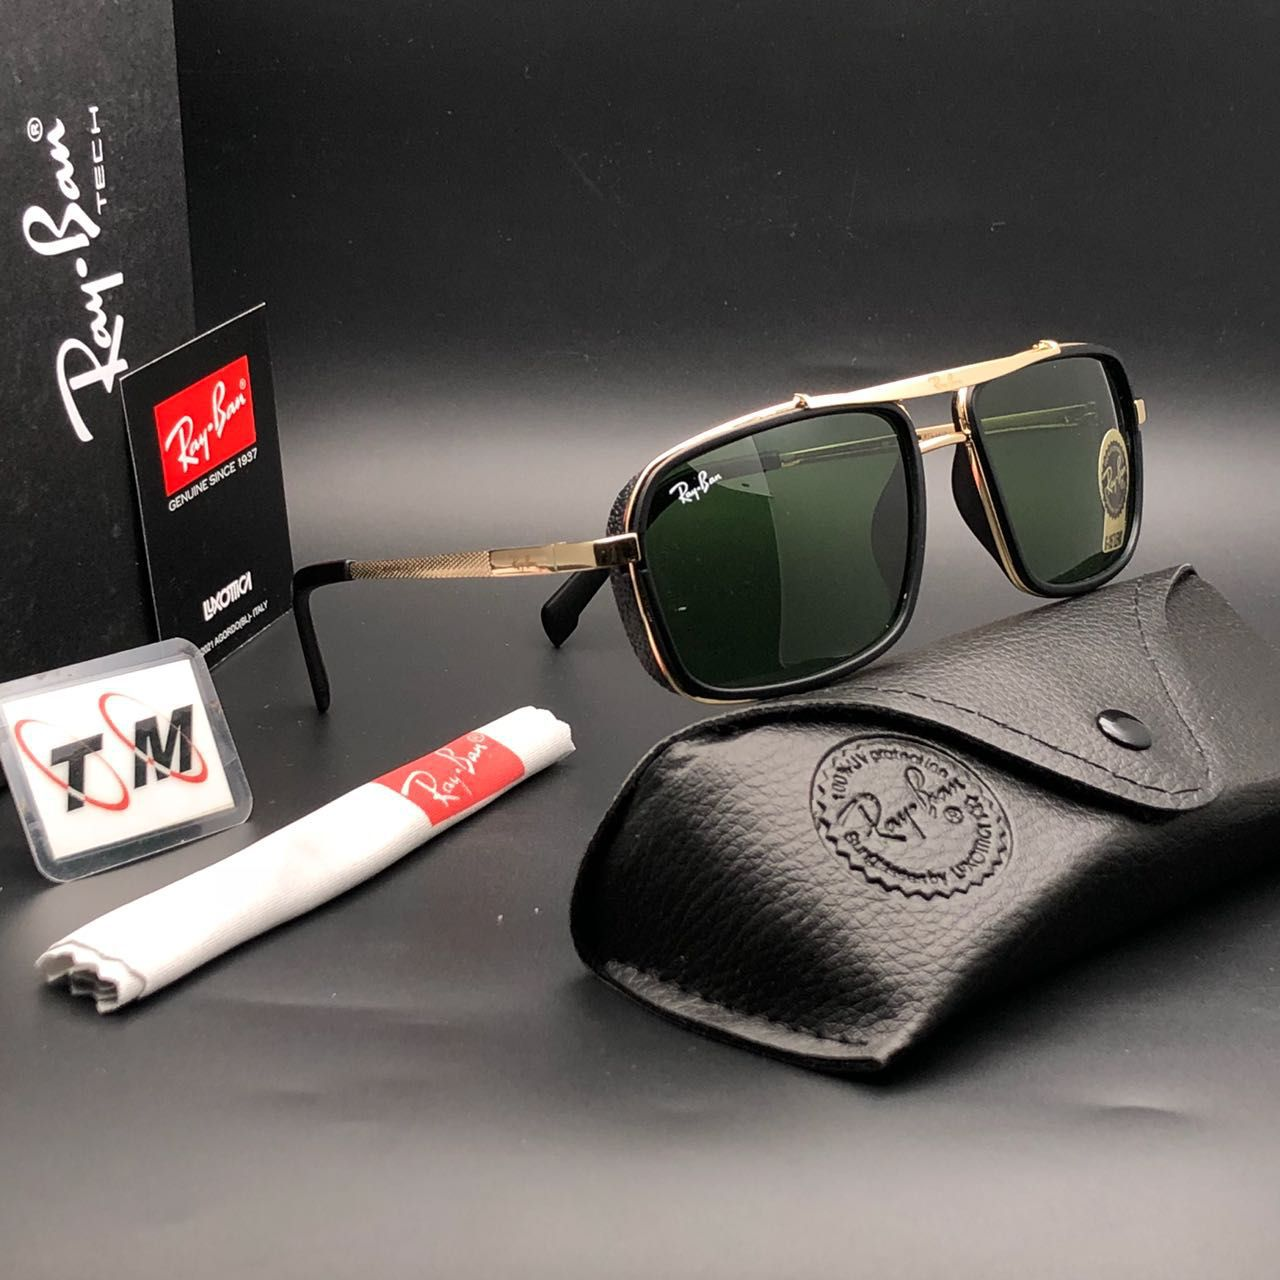 2b52dd8e30 Ray Ban Avaitor Green Aviator Sunglasses ( 4413 ) - Buy Ray Ban ...